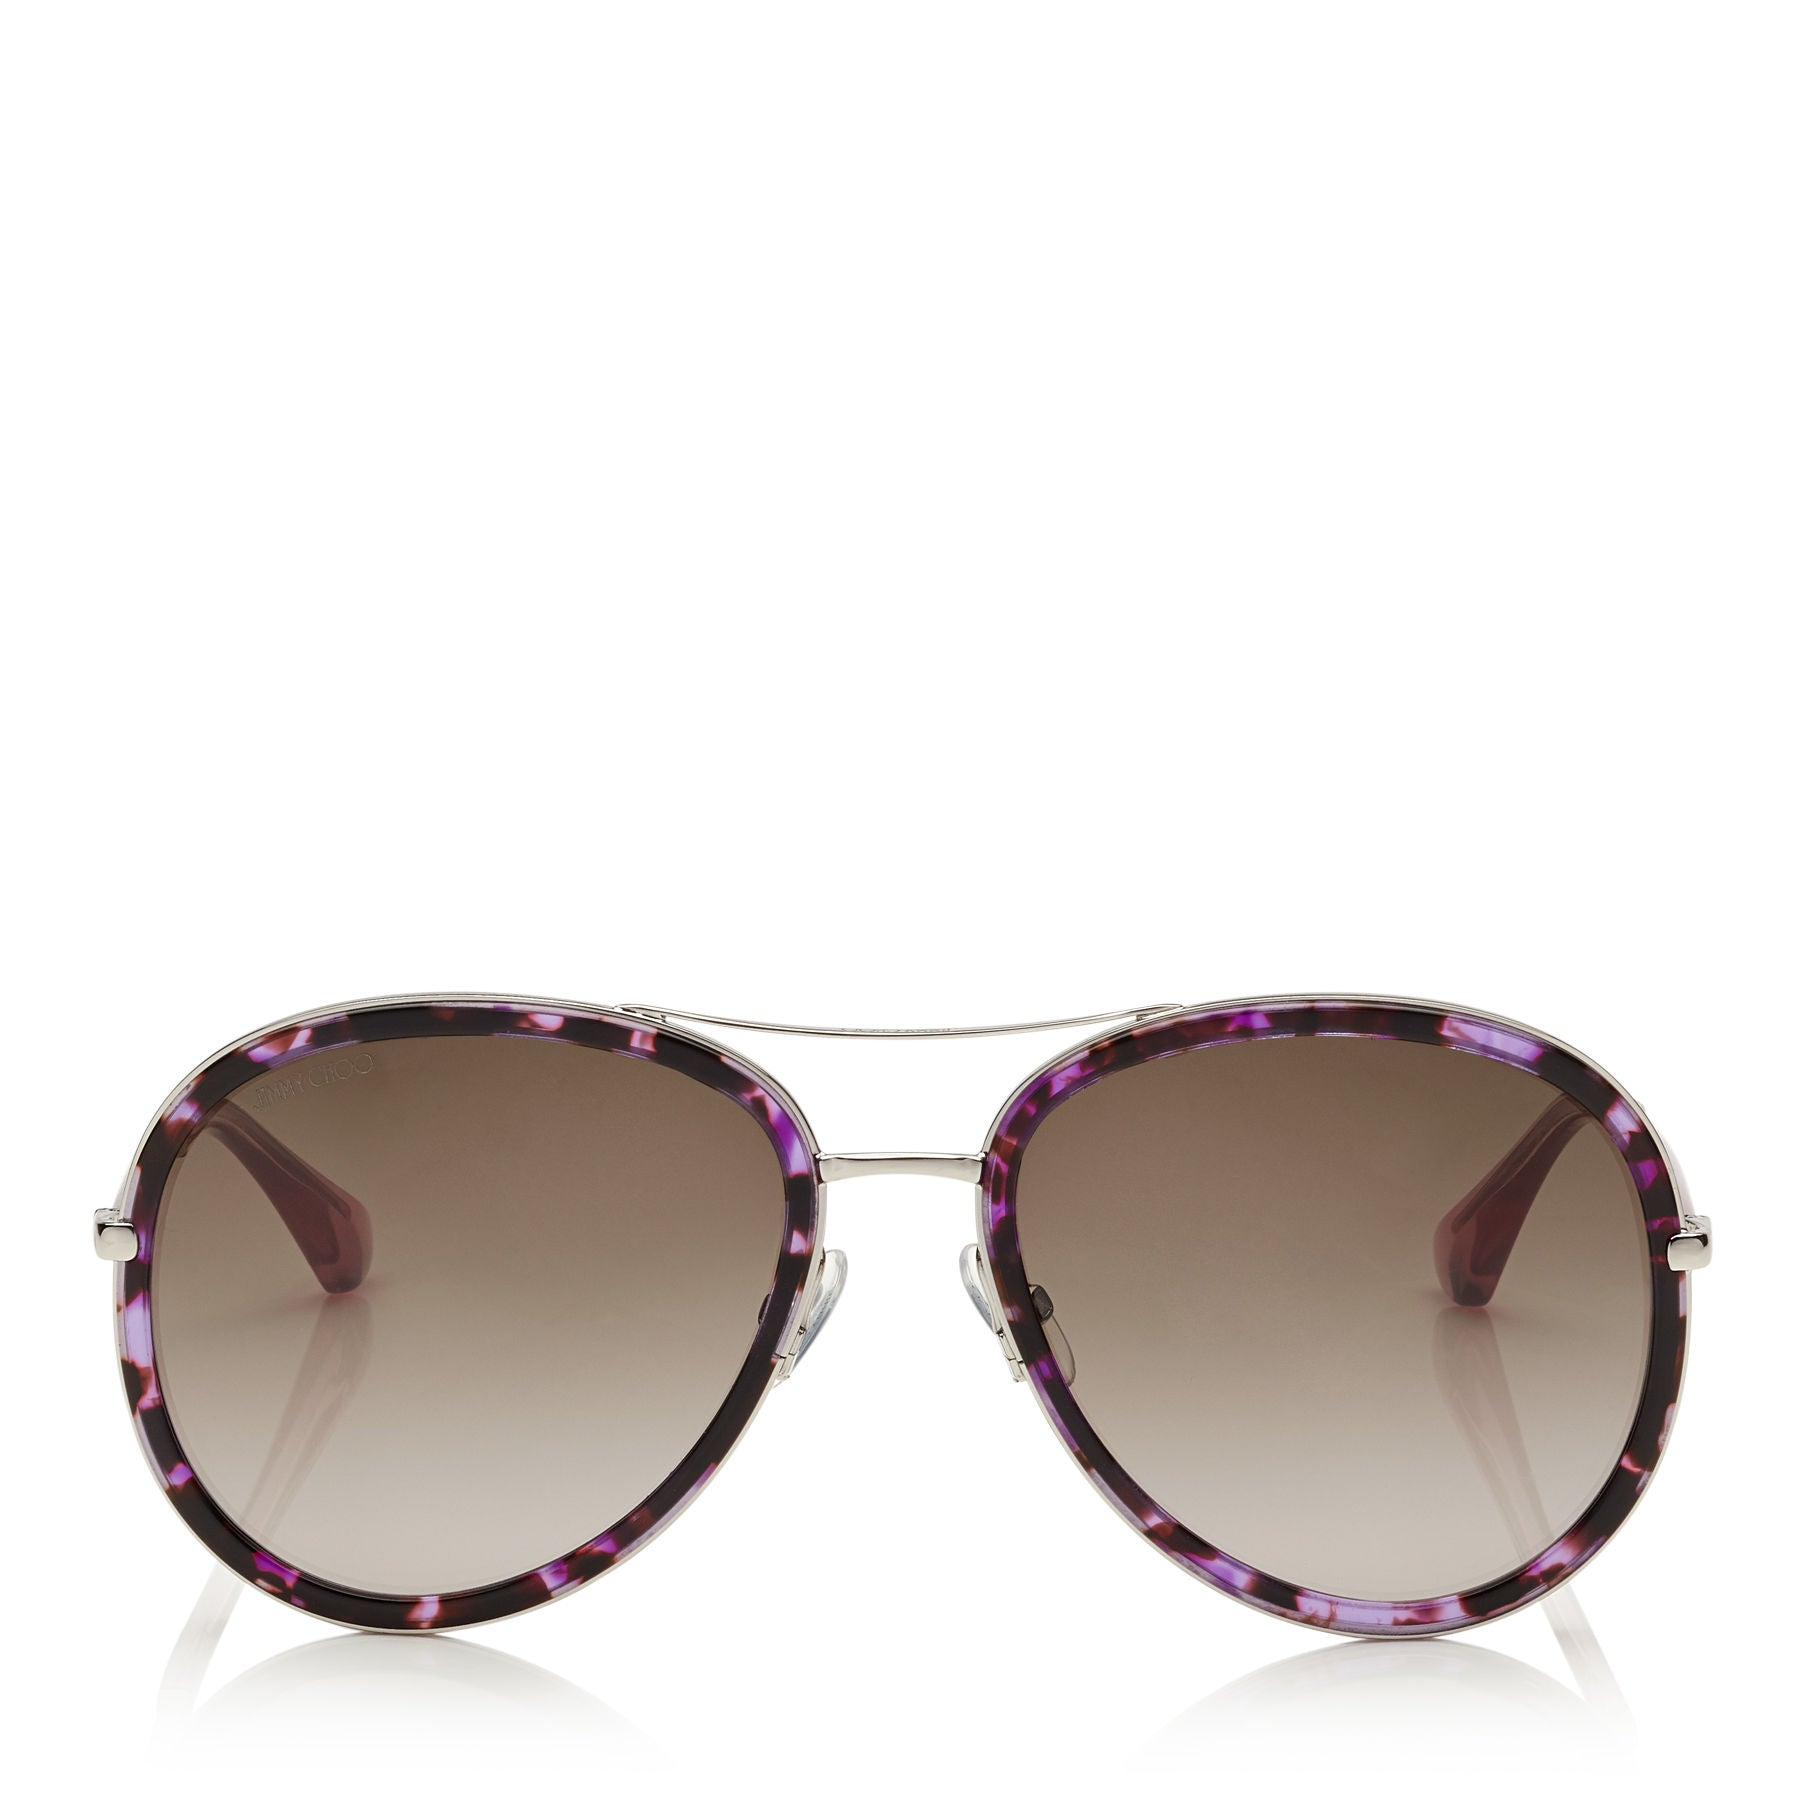 JIMMY CHOO Tora Havana and Violet Aviator Sunglasses ITEM NO. TORAS57E1LP